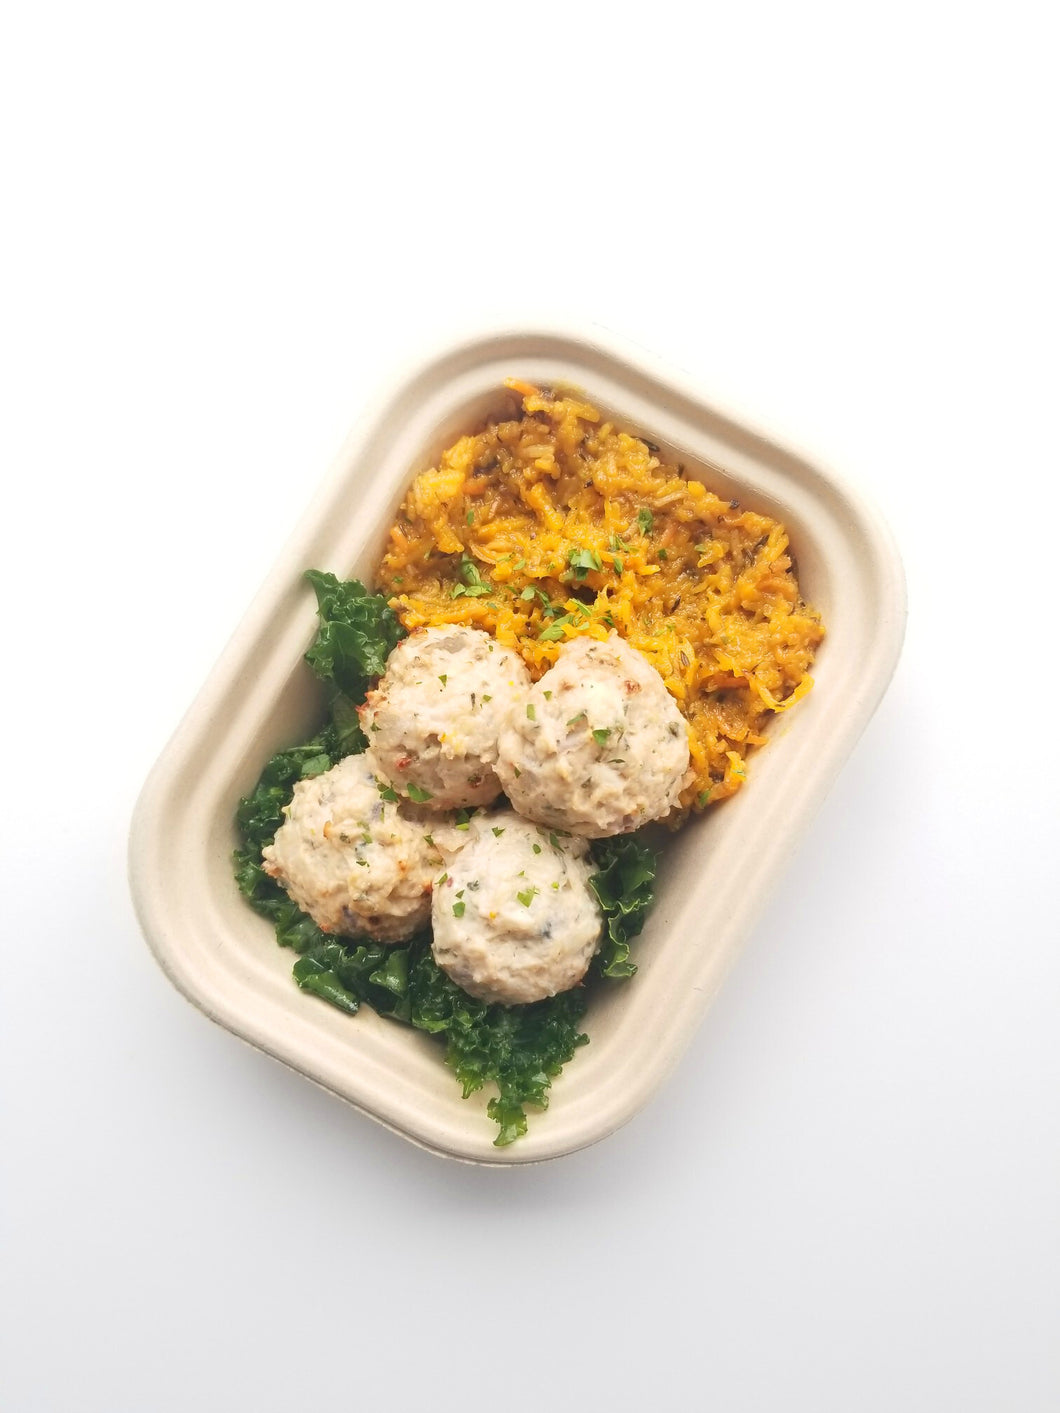 Herb Pork Meatballs with Roasted Delicata Squash, Herb Gravy